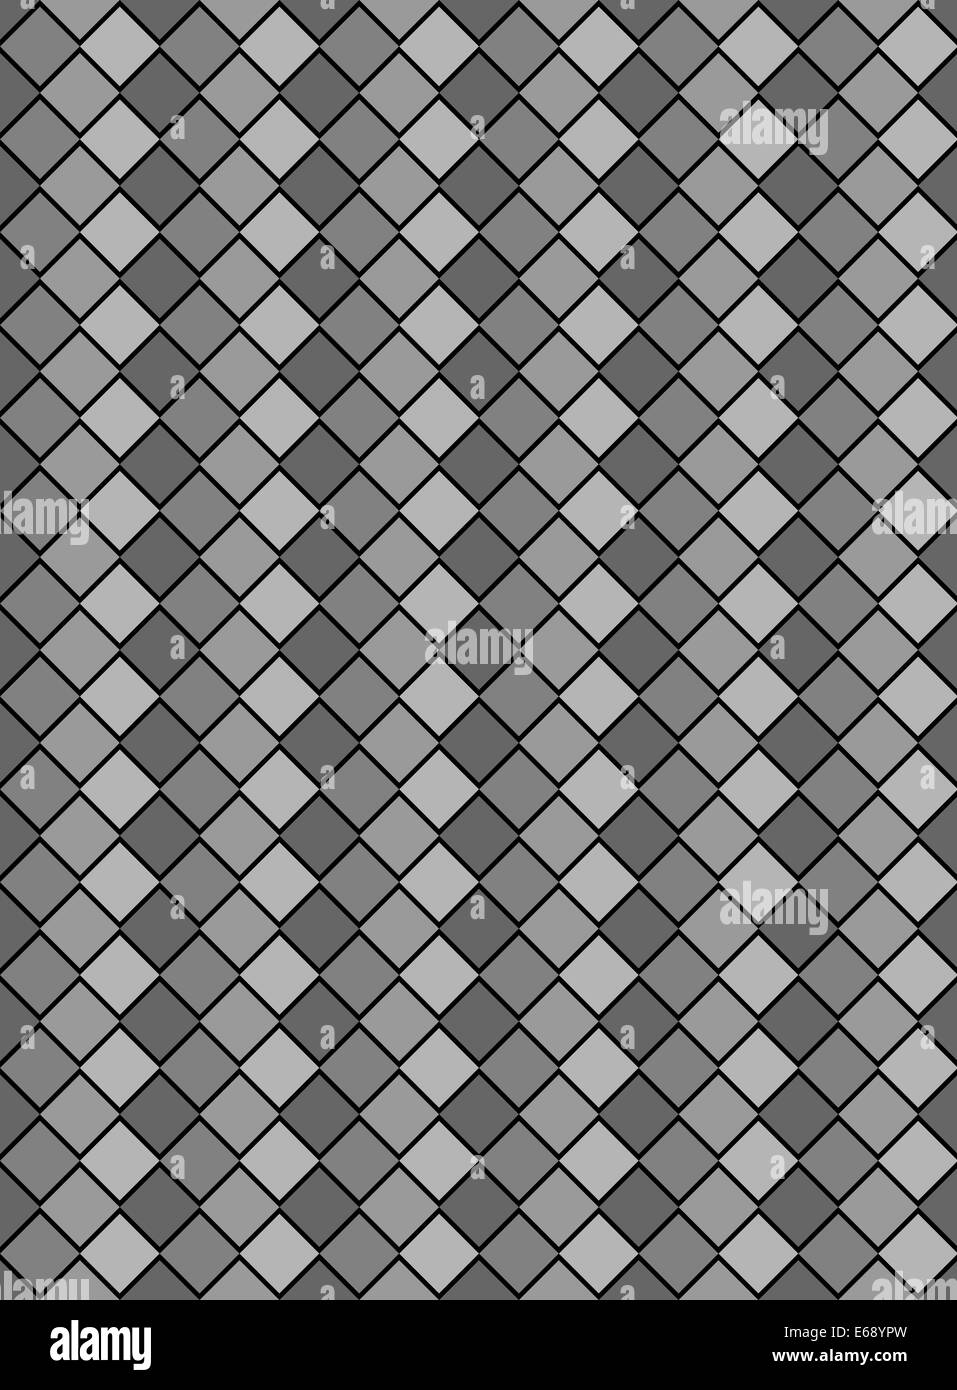 Four tones of gray variegated diamond snake style wallpaper texture pattern. - Stock Image